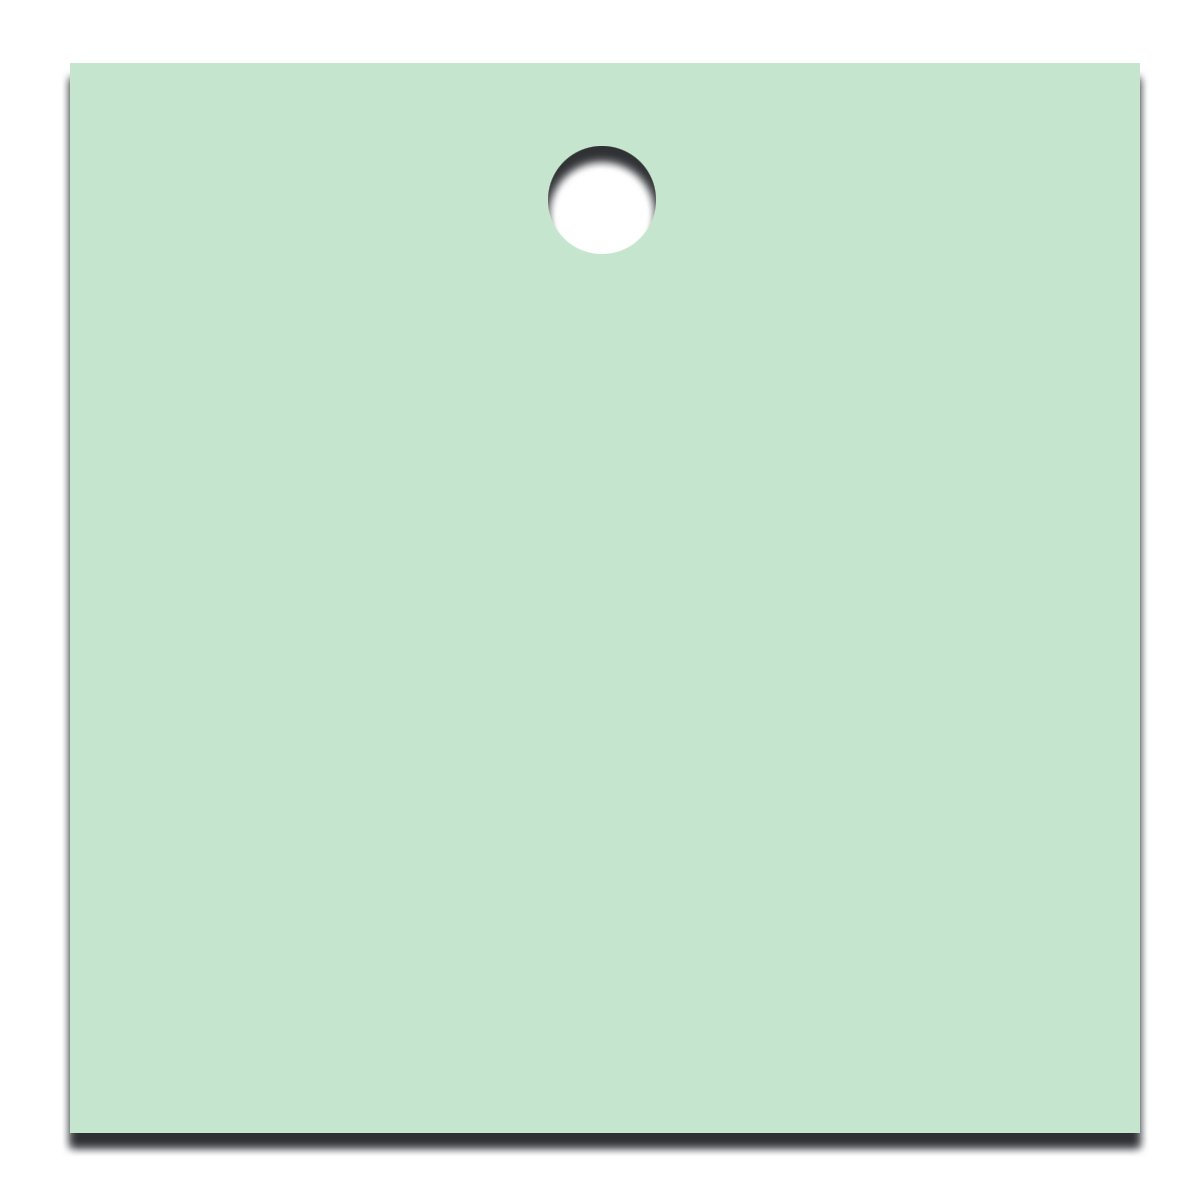 Accuform TDG229WT Accu-Ply Plastic Blank Identification Tag 2-1//2 W x 2-1//2 L White Pack of 25 2-1//2 W x 2-1//2 L Square